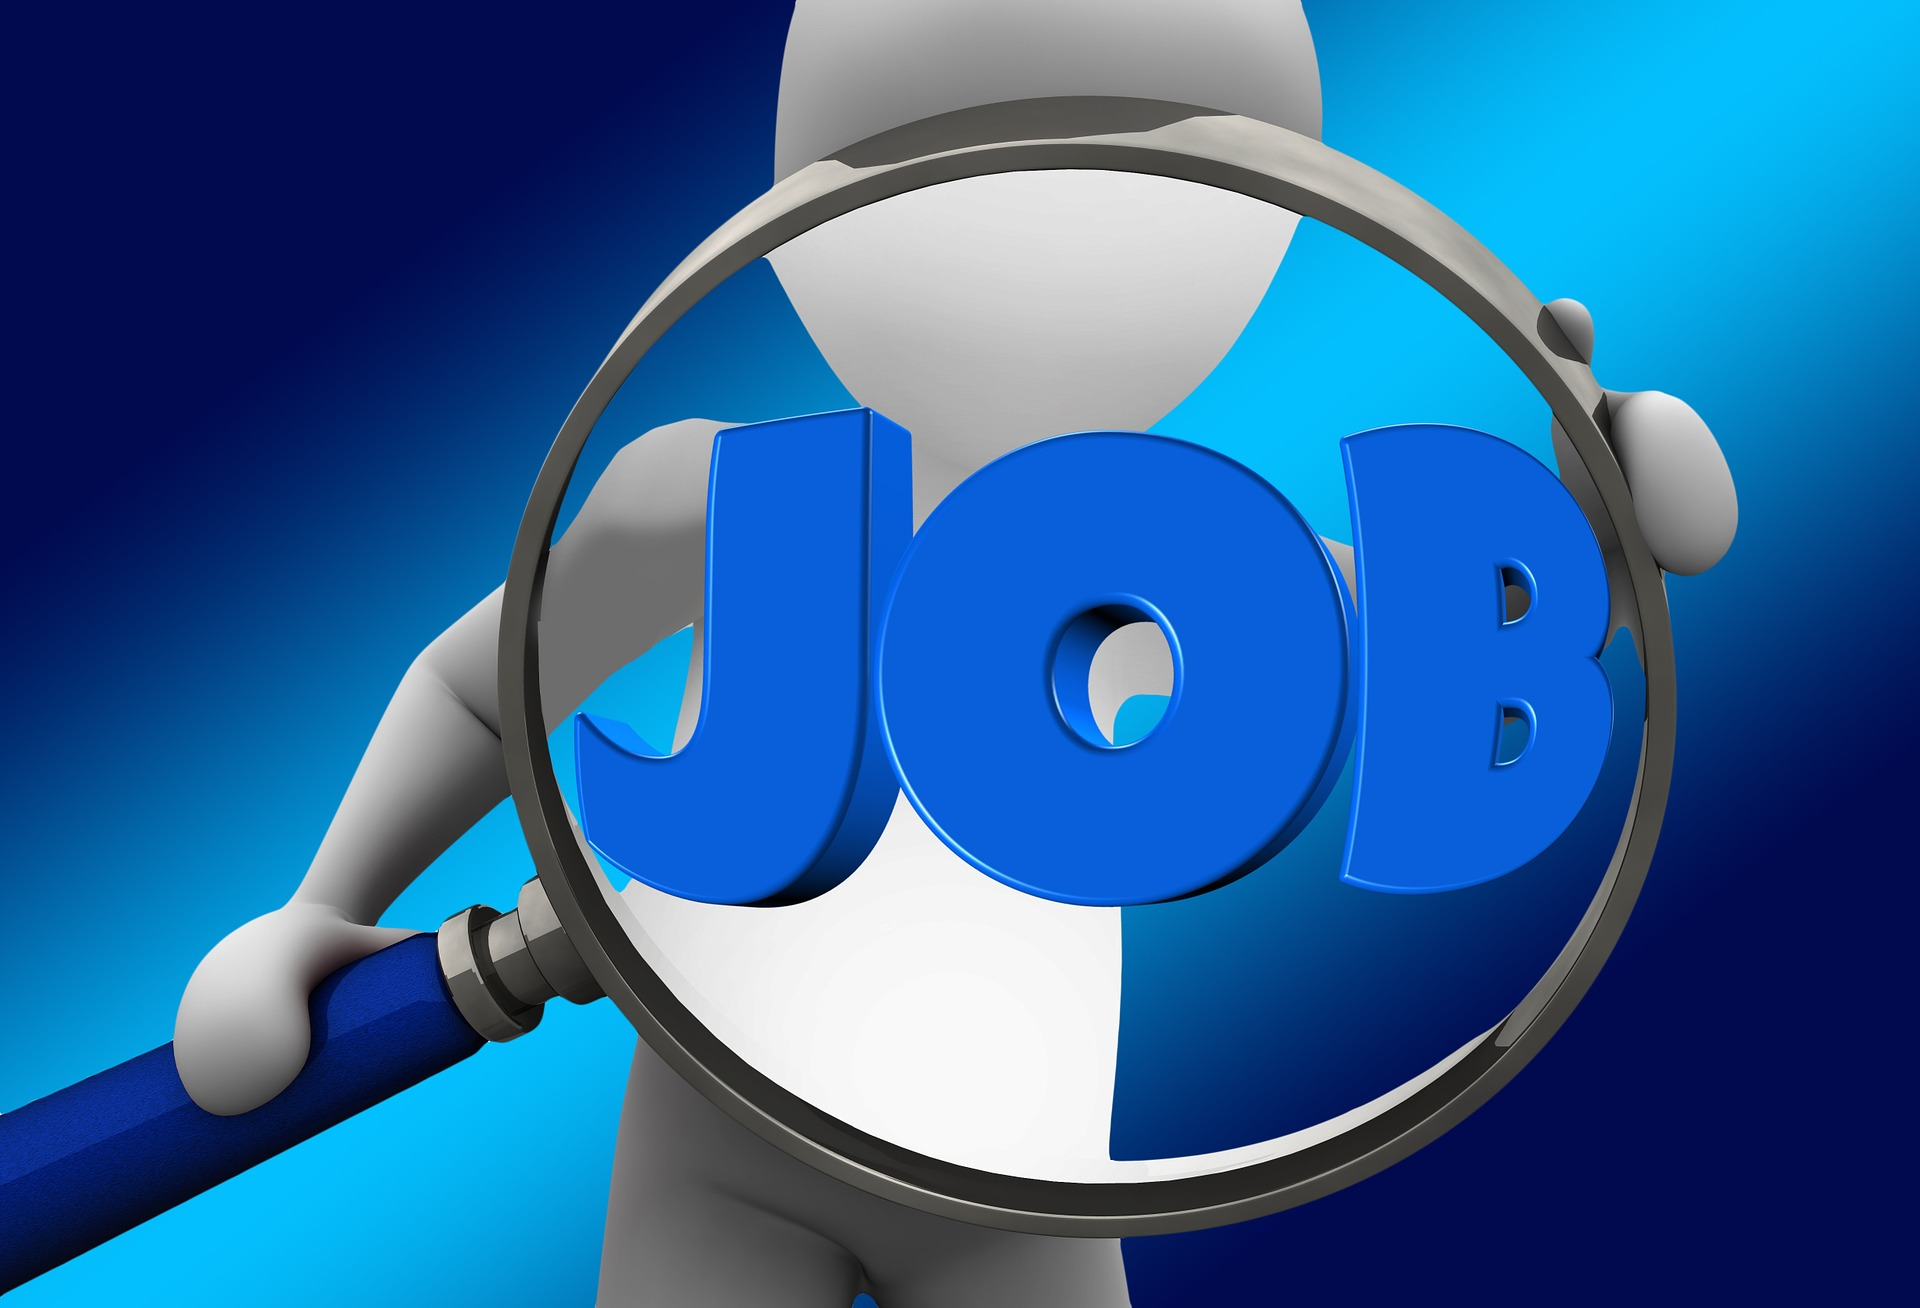 ITI Recruitment 2018: Apply For 60 Assistant Executive Engineer Trainee Vacancies